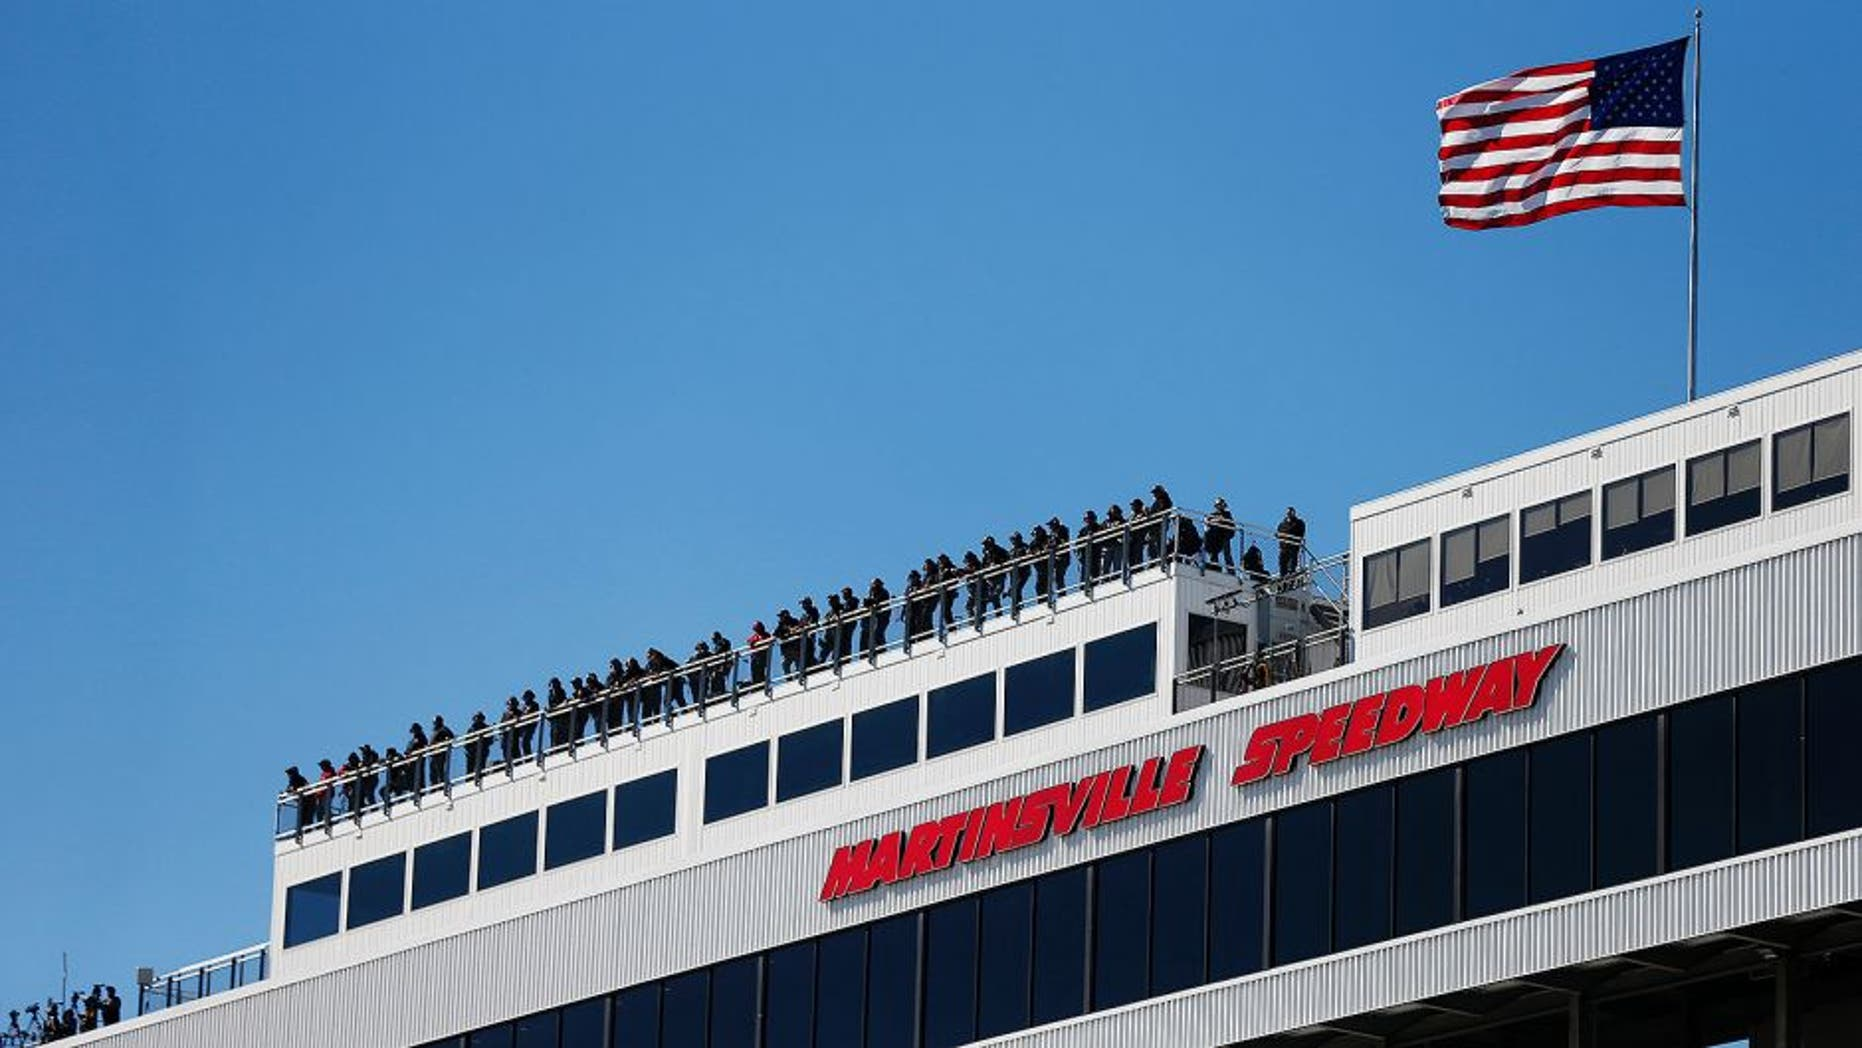 MARTINSVILLE, VA - OCTOBER 30: A general view of spotters on the roof during practice for the NASCAR Camping World Truck Series Kroger 200 at Martinsville Speedway on October 30, 2015 in Martinsville, Virginia. (Photo by Brian Lawdermilk/NASCAR via Getty Images)